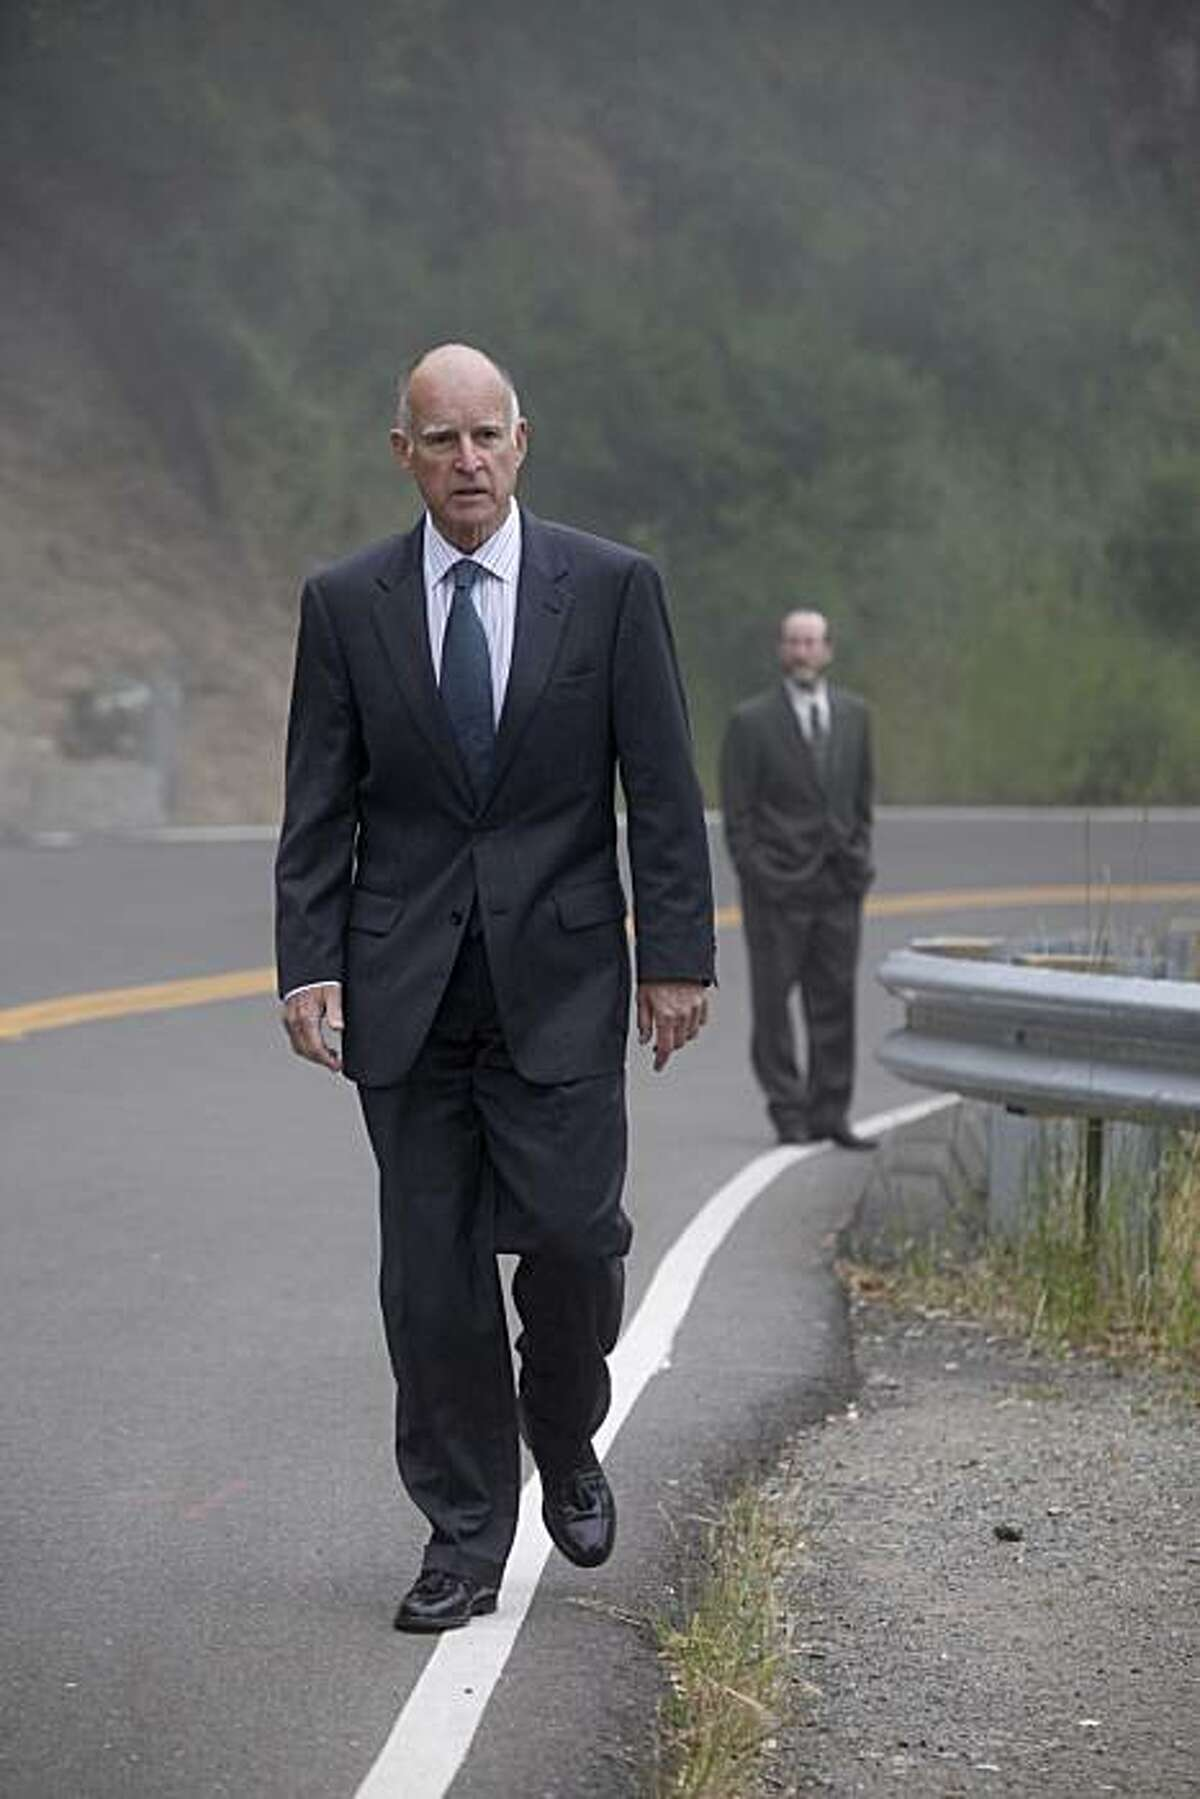 Joined by his campaign manager, Steven Glazer, California Attorney General Jerry Brown walks back to his Oakland hills home after voting in the primary election at Oakland Fire House No. 6 on Tuesday.